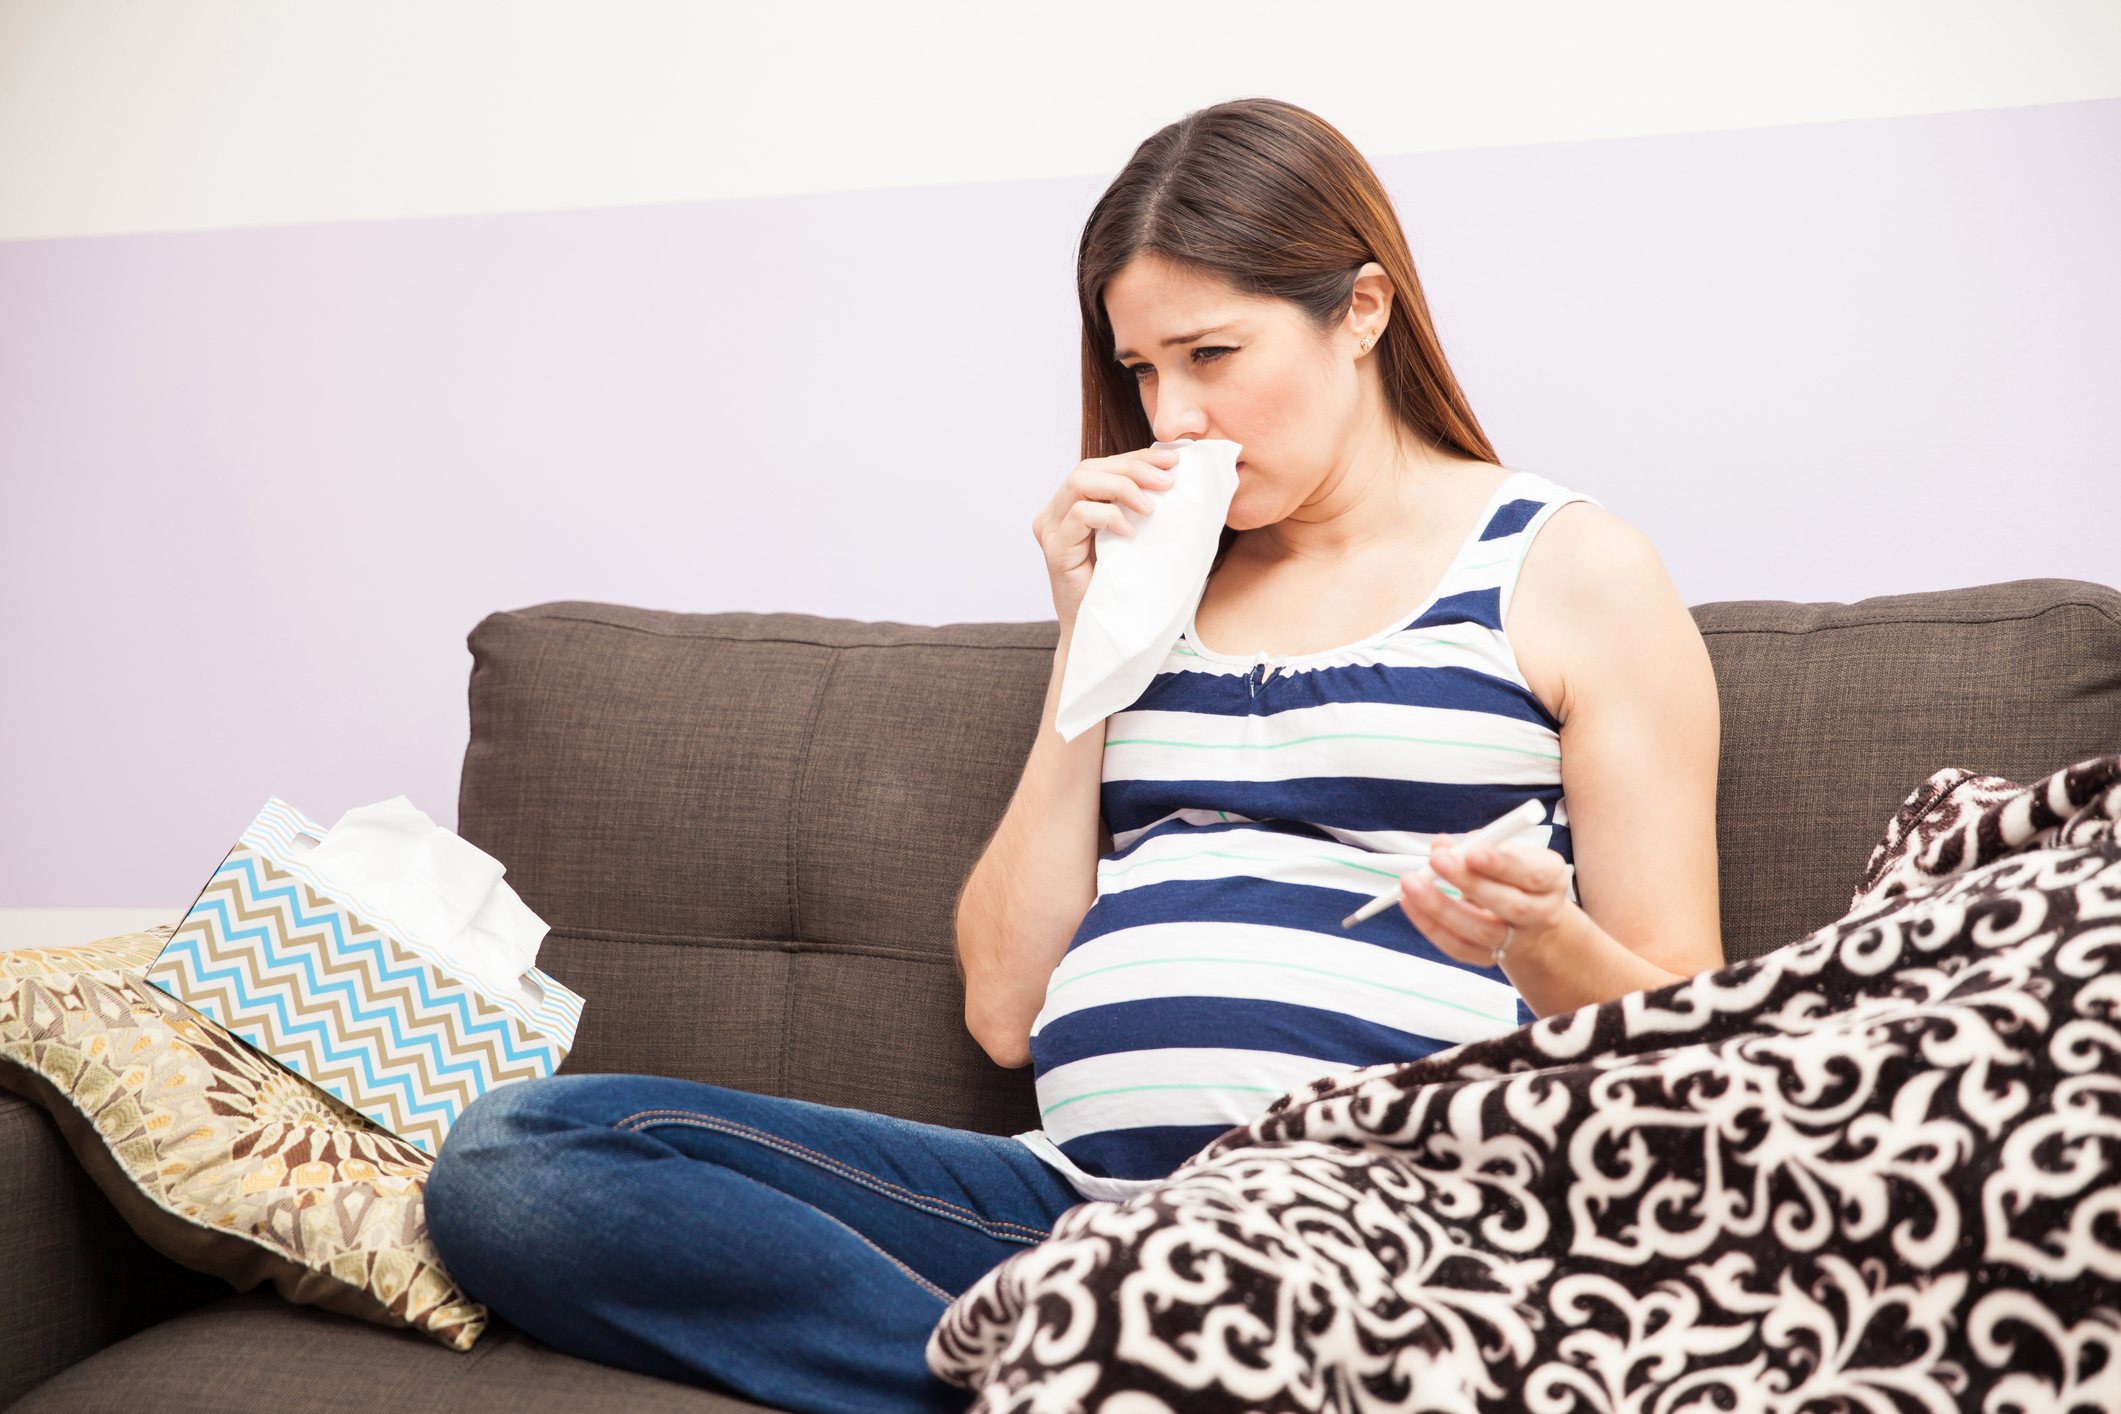 Flu shots during pregnancy - Harvard Health Blog - Harvard Health